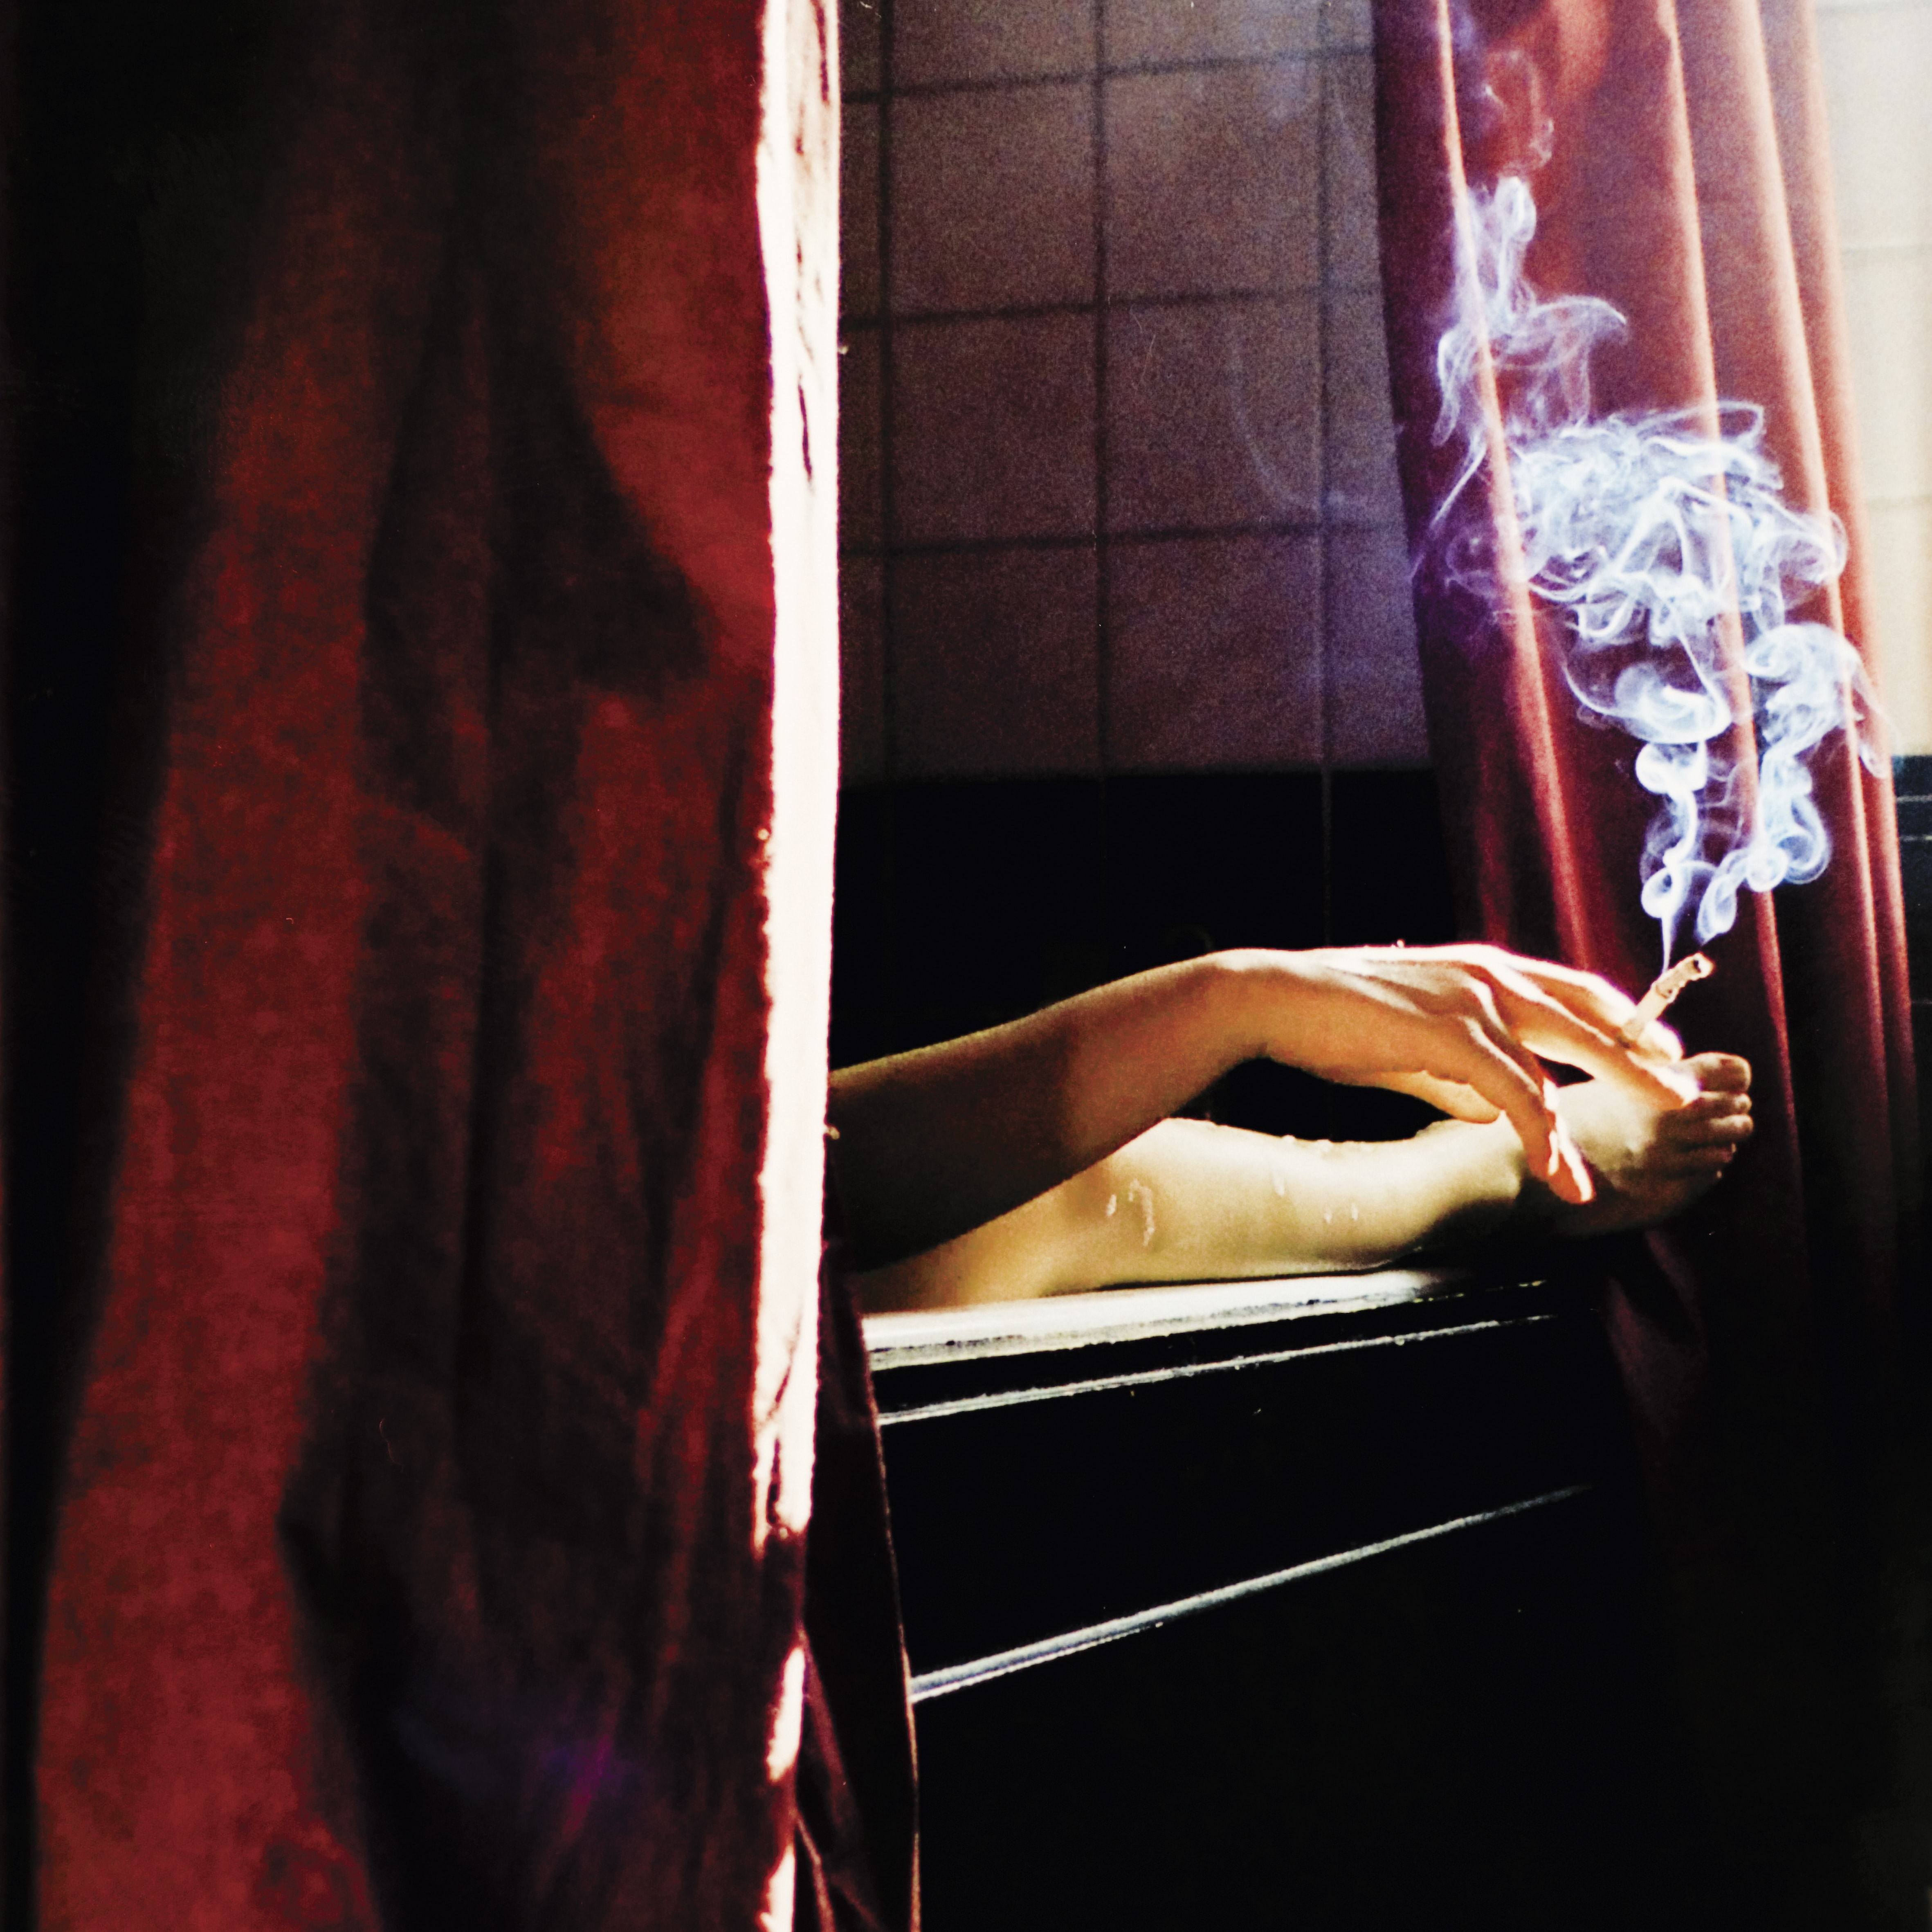 A woman in a bathtub with a cigarette in her hand.